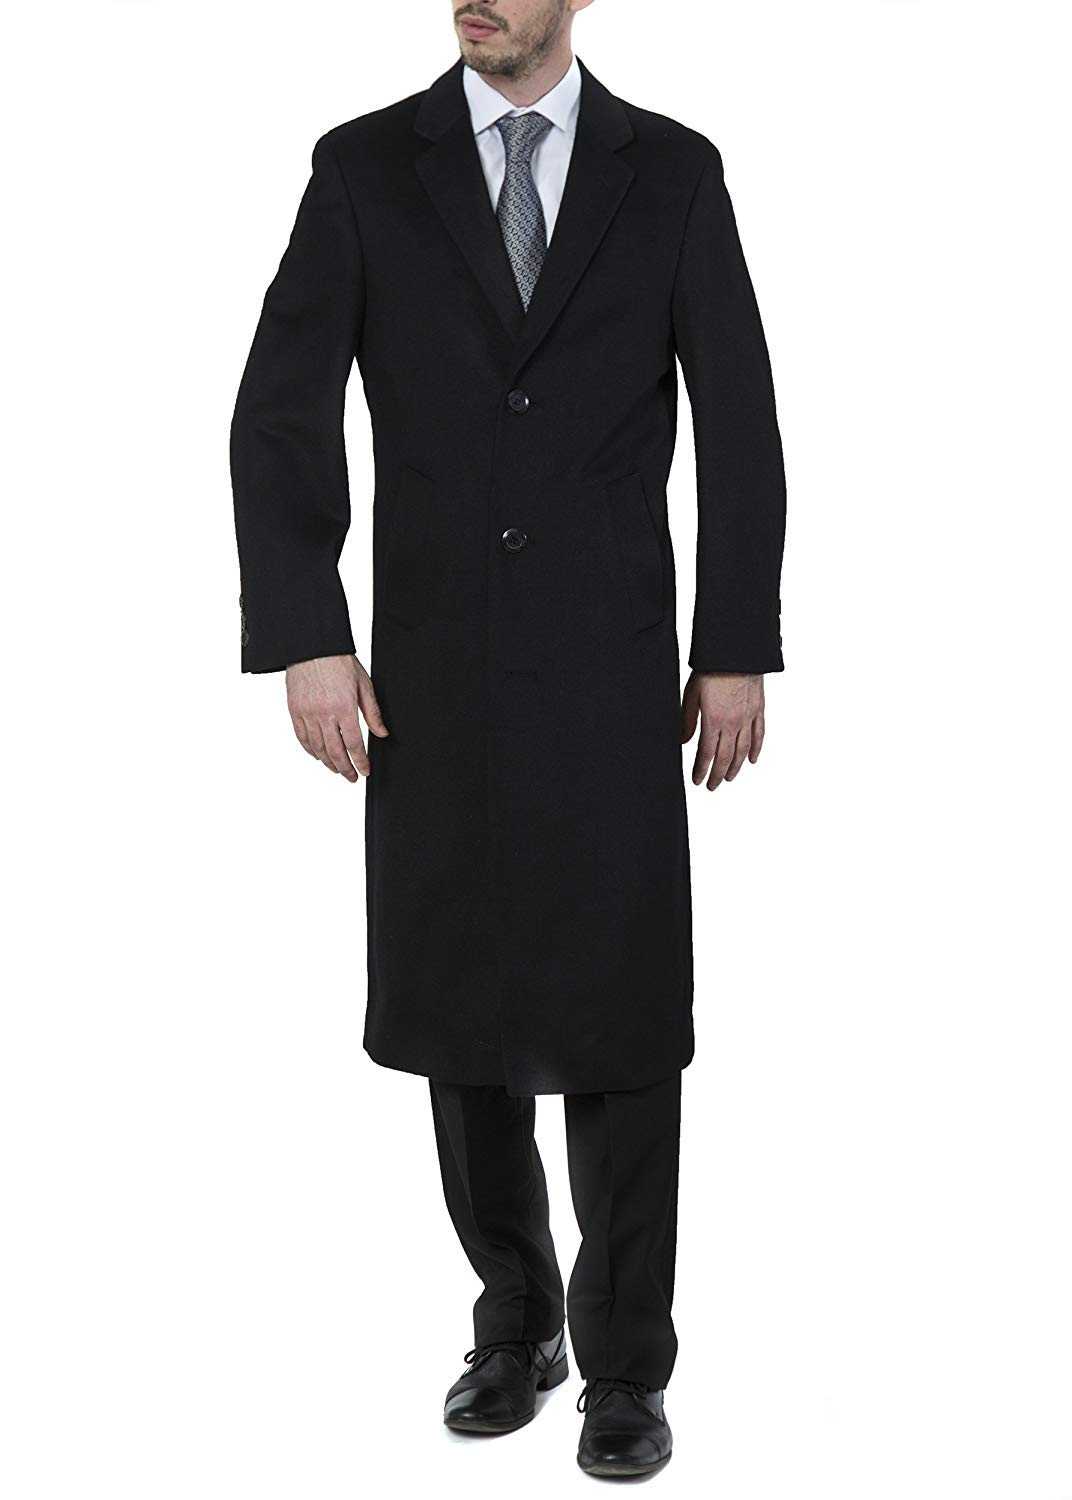 b8d4e8e3 Adam Baker Men's Single Breasted Luxury Wool Full Length Topcoat -  Available In Colors